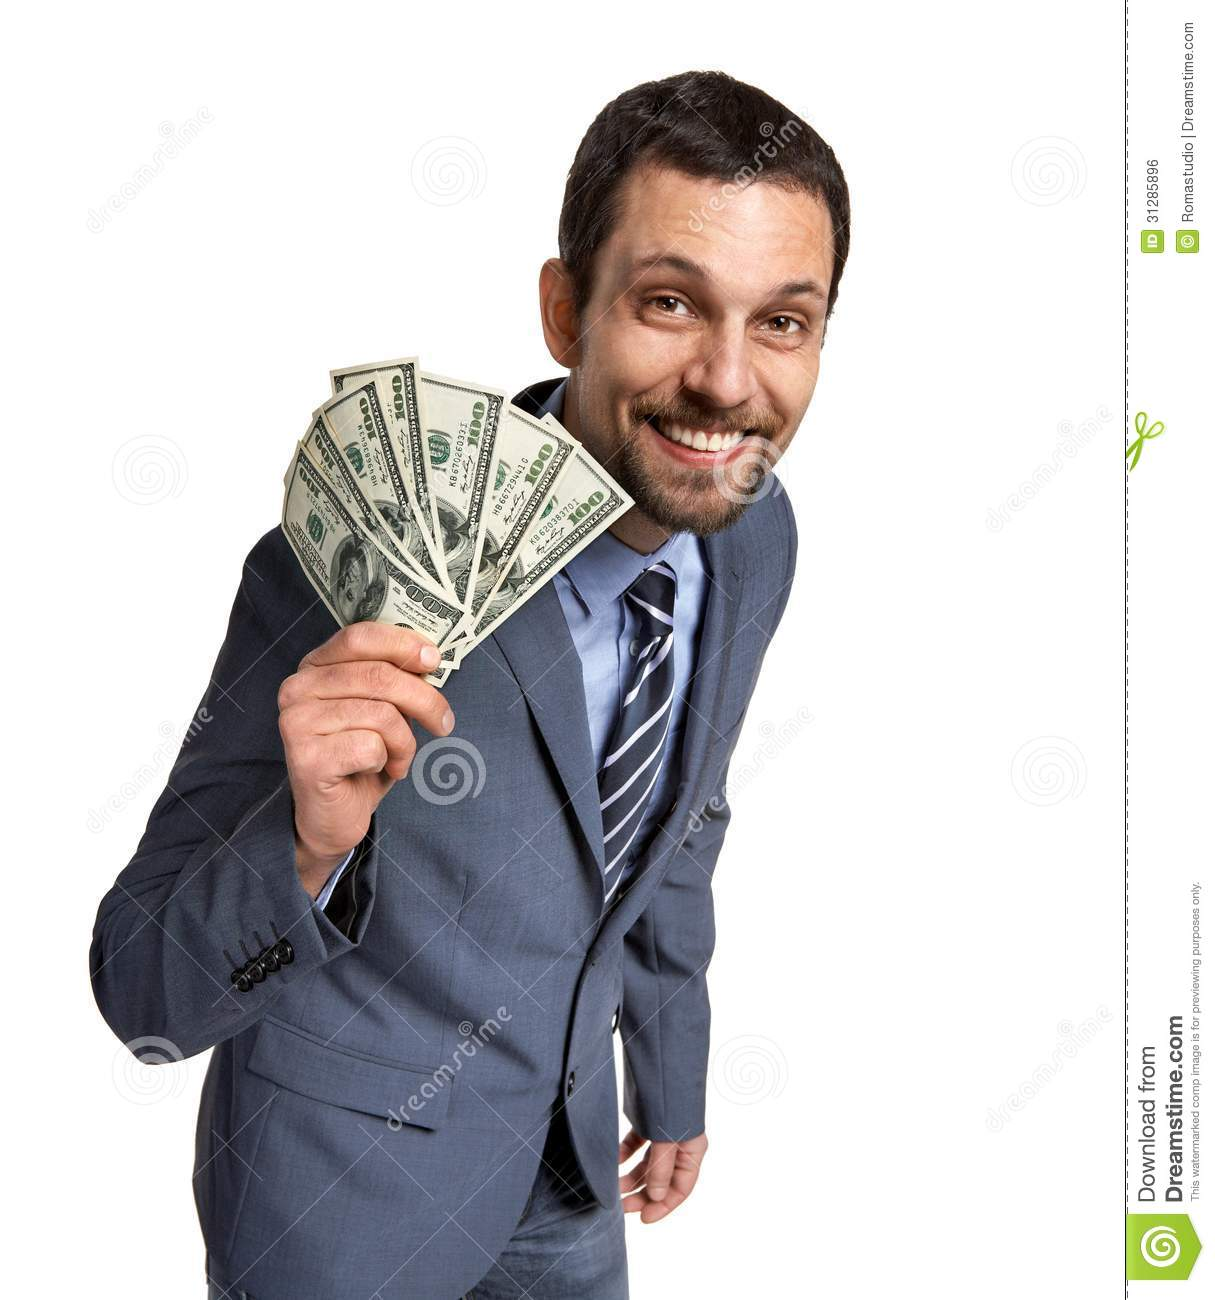 Successful Businessman Showing Money Royalty Free Stock Image - Image ...